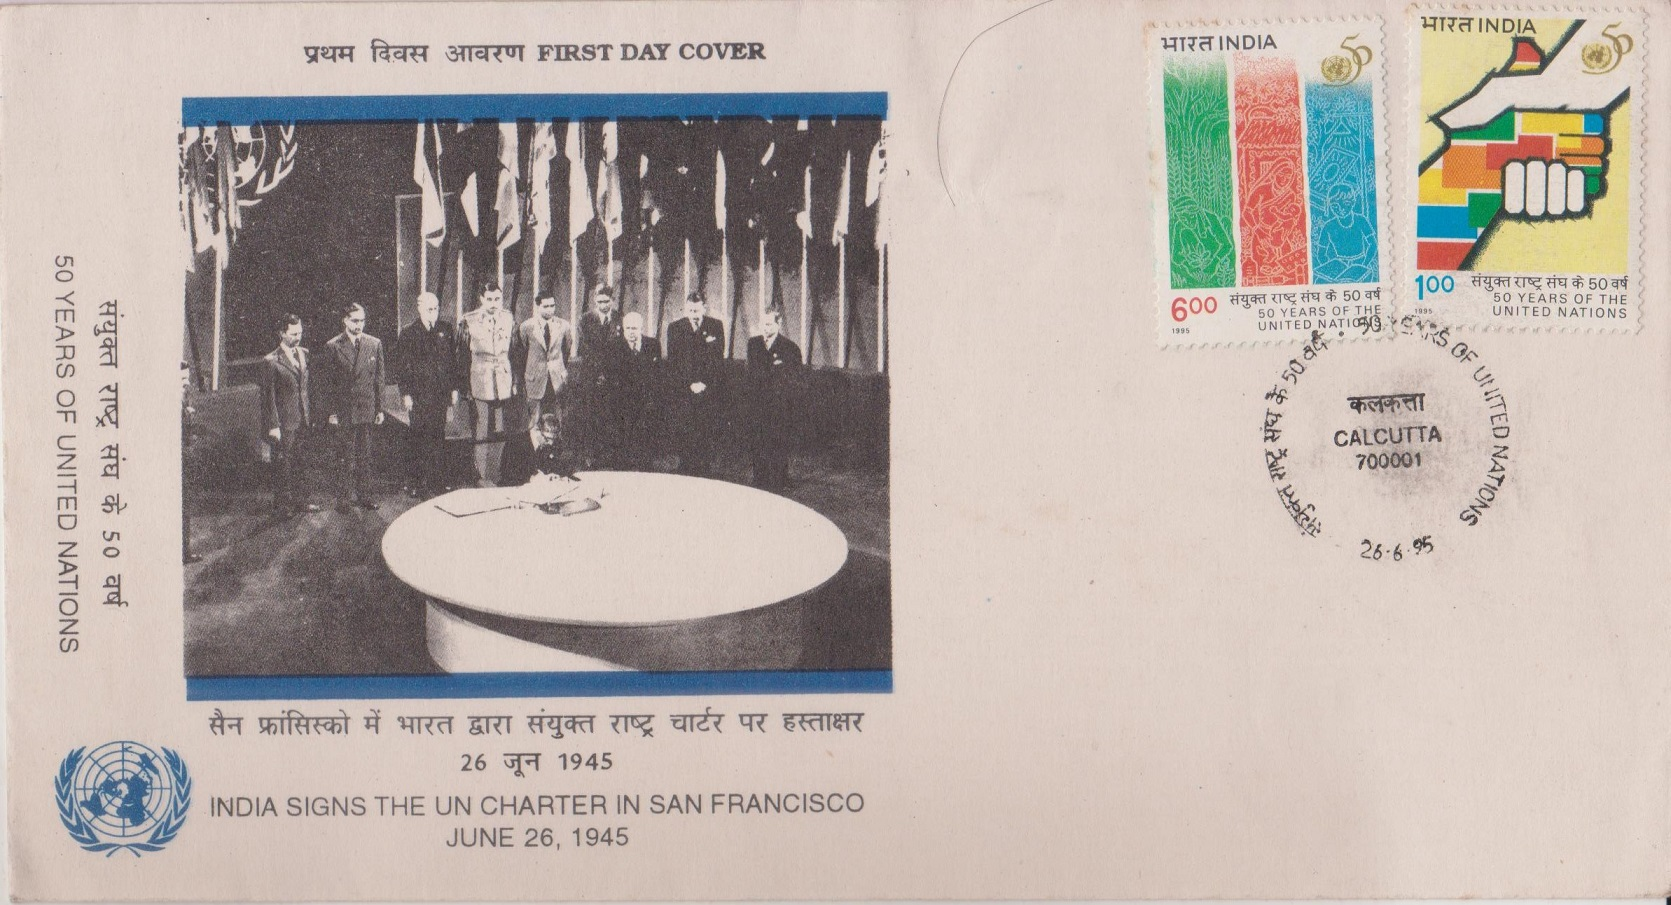 India Signs the UN Charter in San Francisco, June 26, 1945